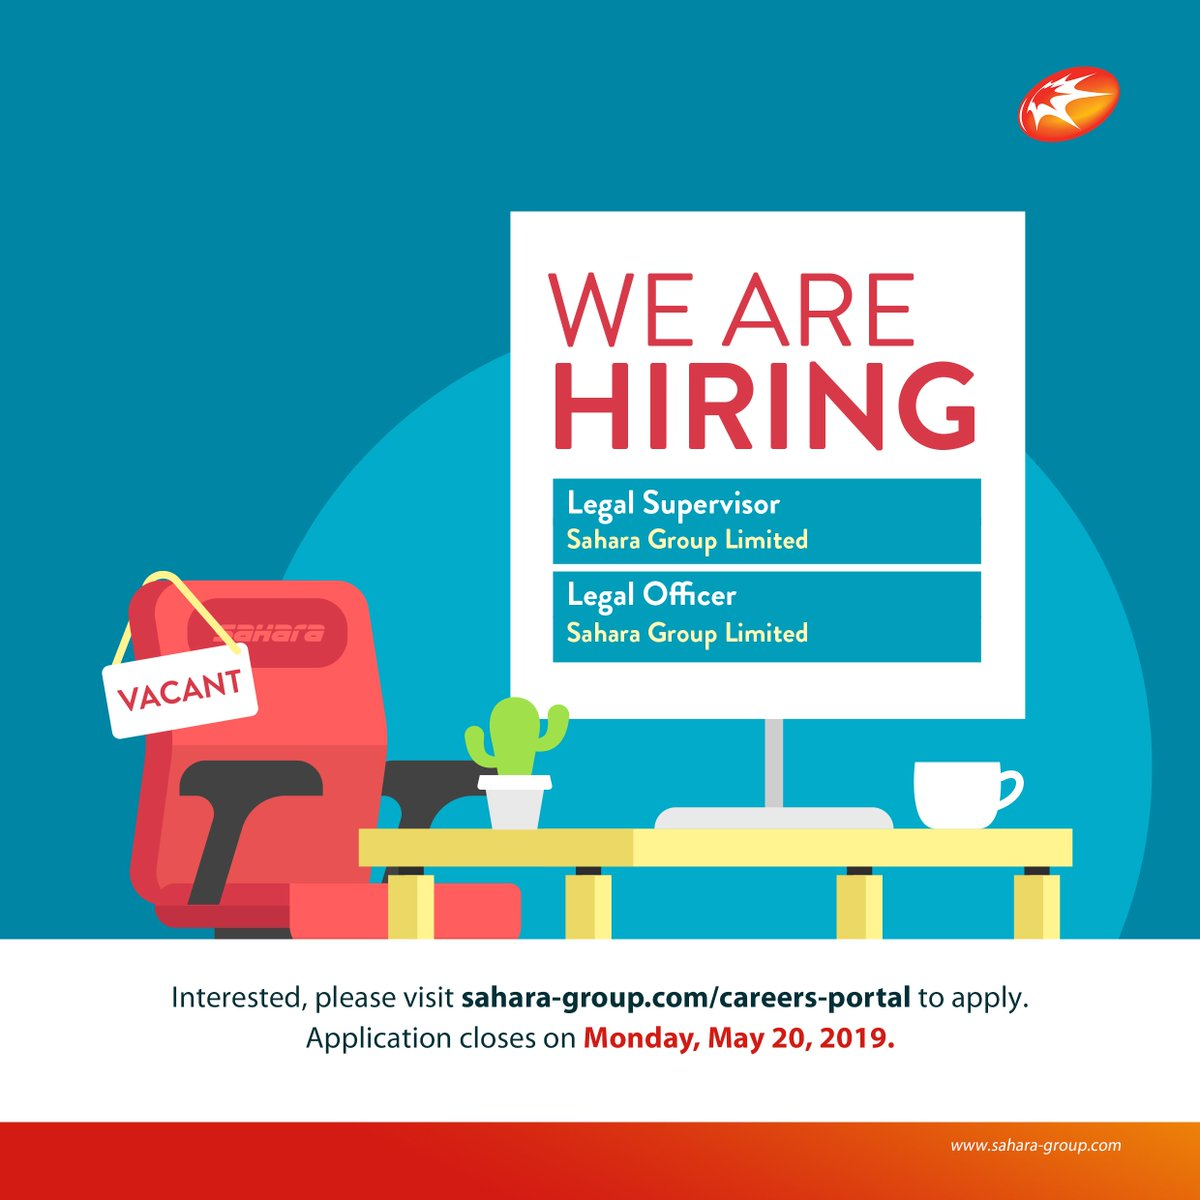 We are currently accepting applications for the following positions: 1. Legal Supervisor 2. Legal Office  To apply, please click link:  http://www. sahara-group.com/careers-portal/  &nbsp;    Application window closes on Monday, May 20th.  #WeAreSahara #BringingEnergyToLife<br>http://pic.twitter.com/cMqTSsrzhQ